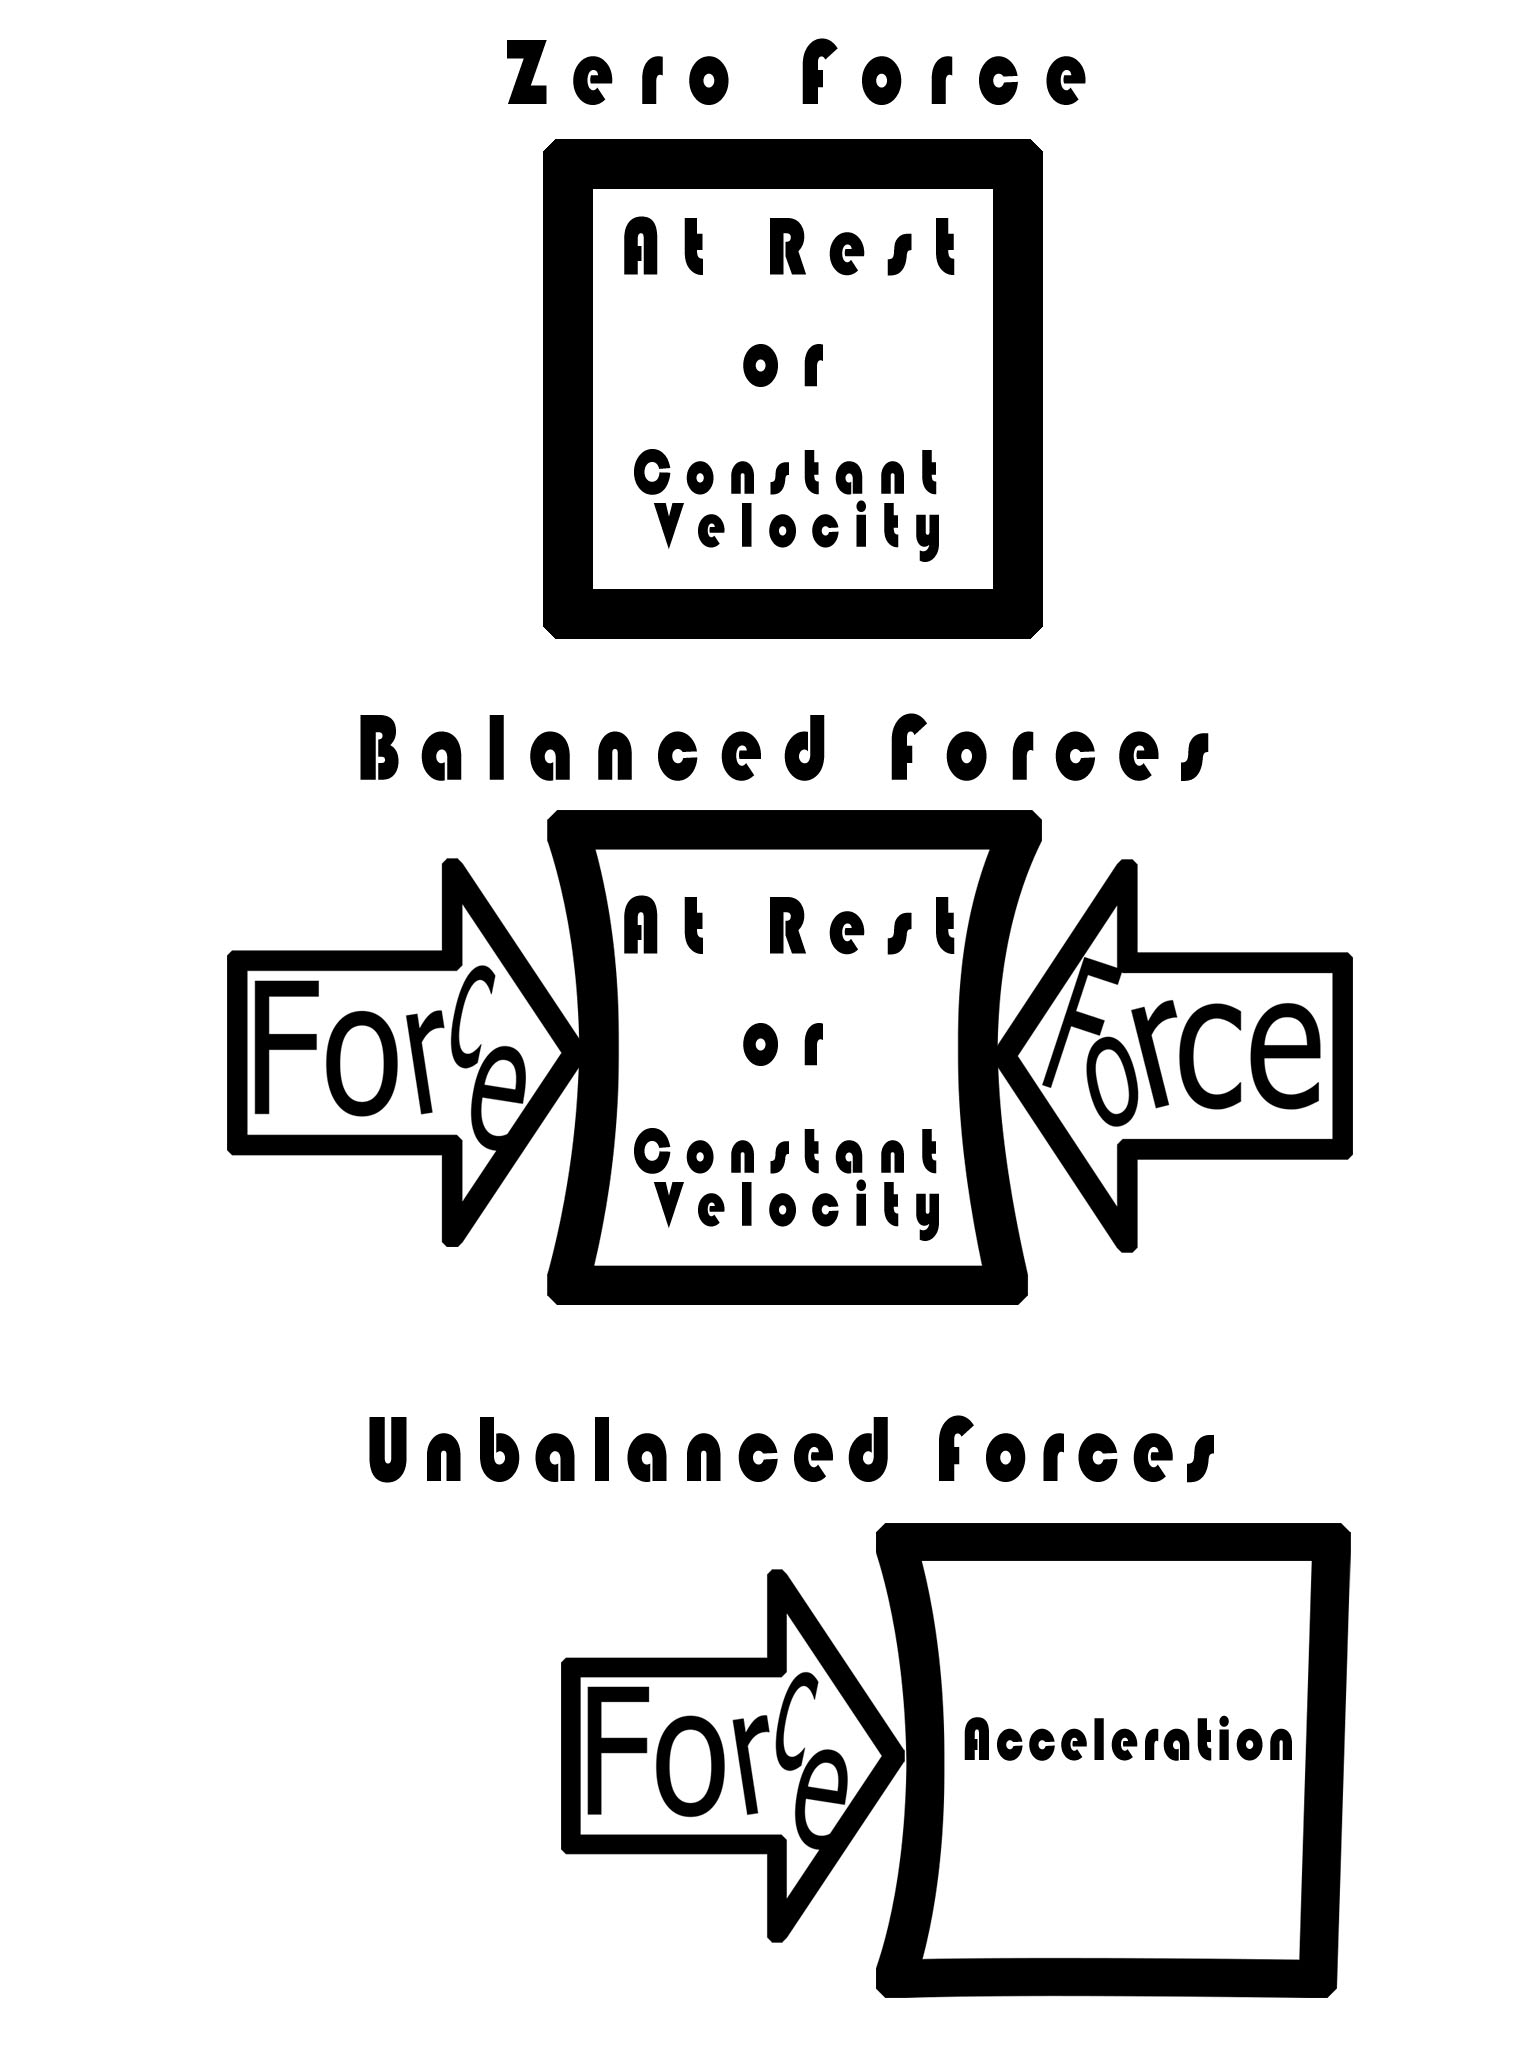 image showing balanced and unbalanced forces on a box